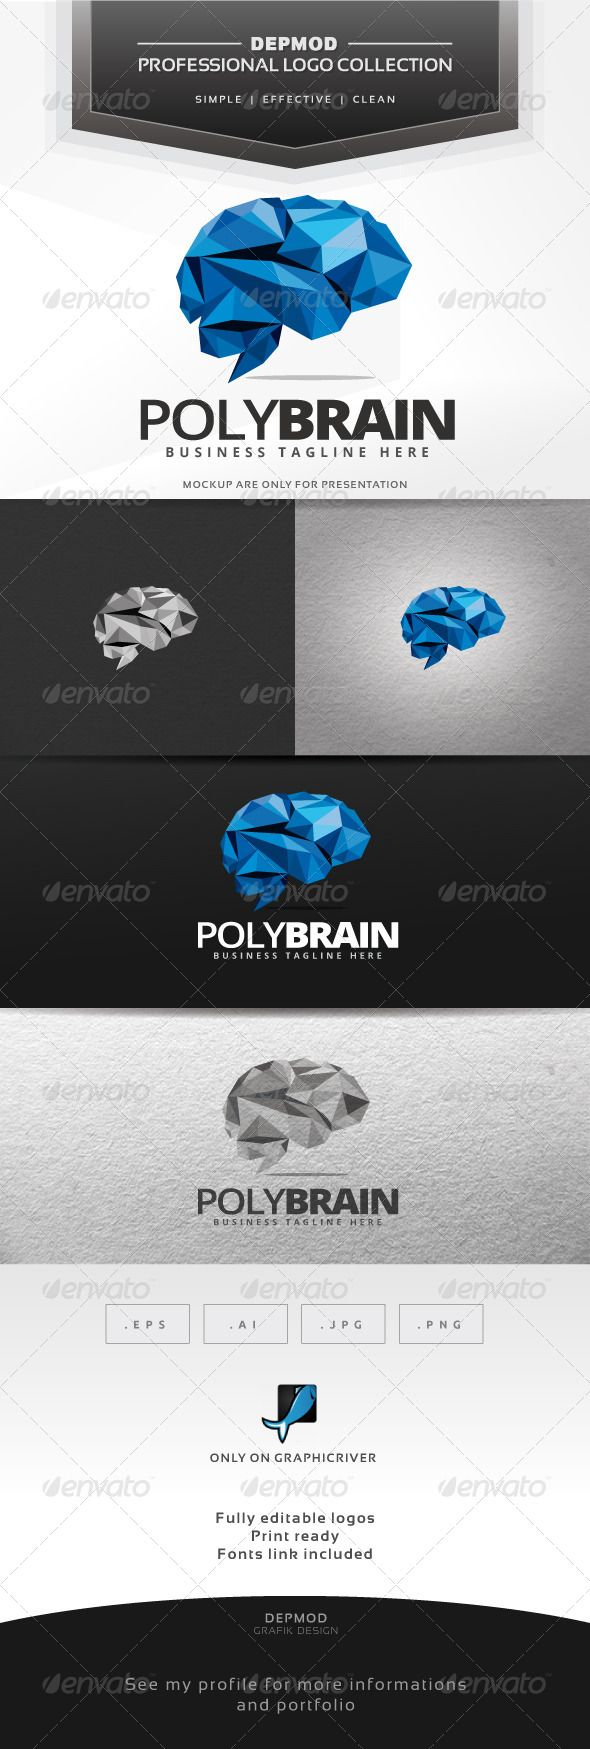 I like the use of a general brain image but in a colorful and more dynamic way.  Might apply to mental skills.